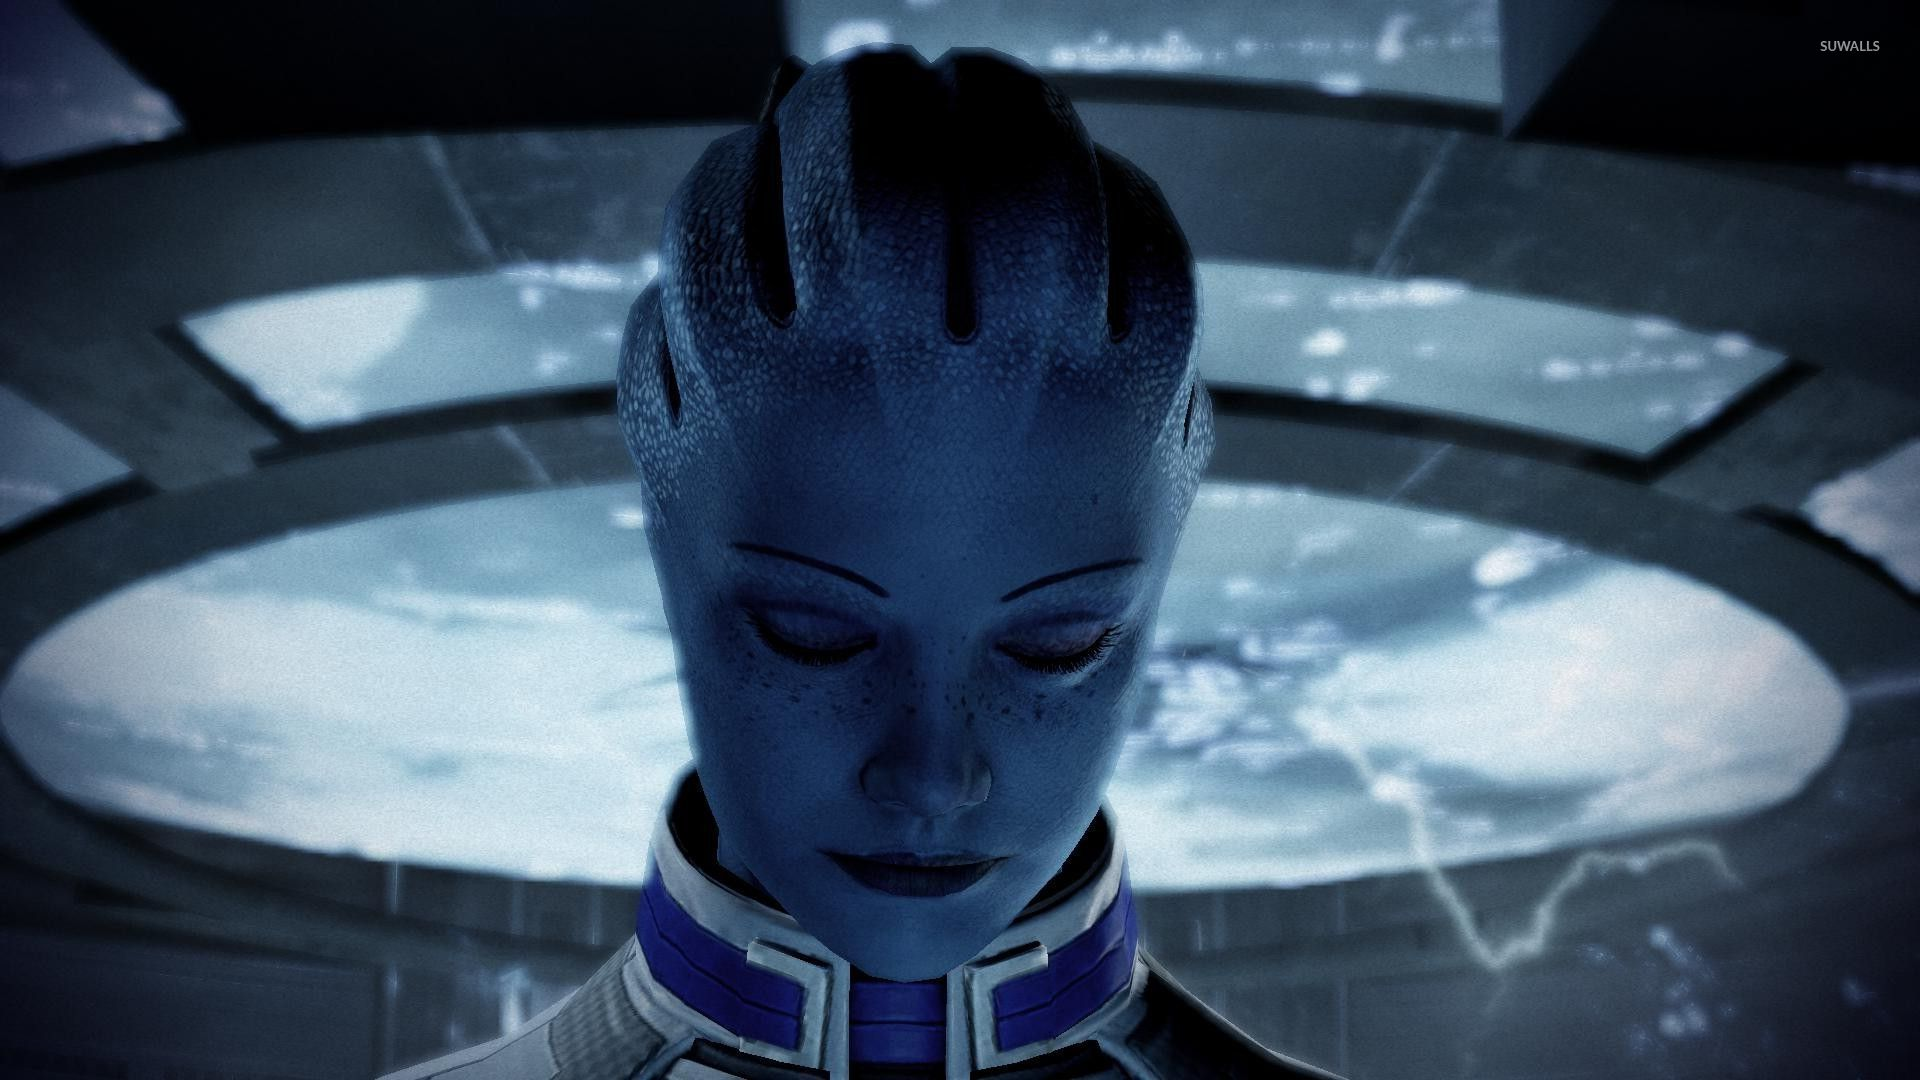 Liara Tsoni Mass Effect 5 Wallpaper Game Wallpapers